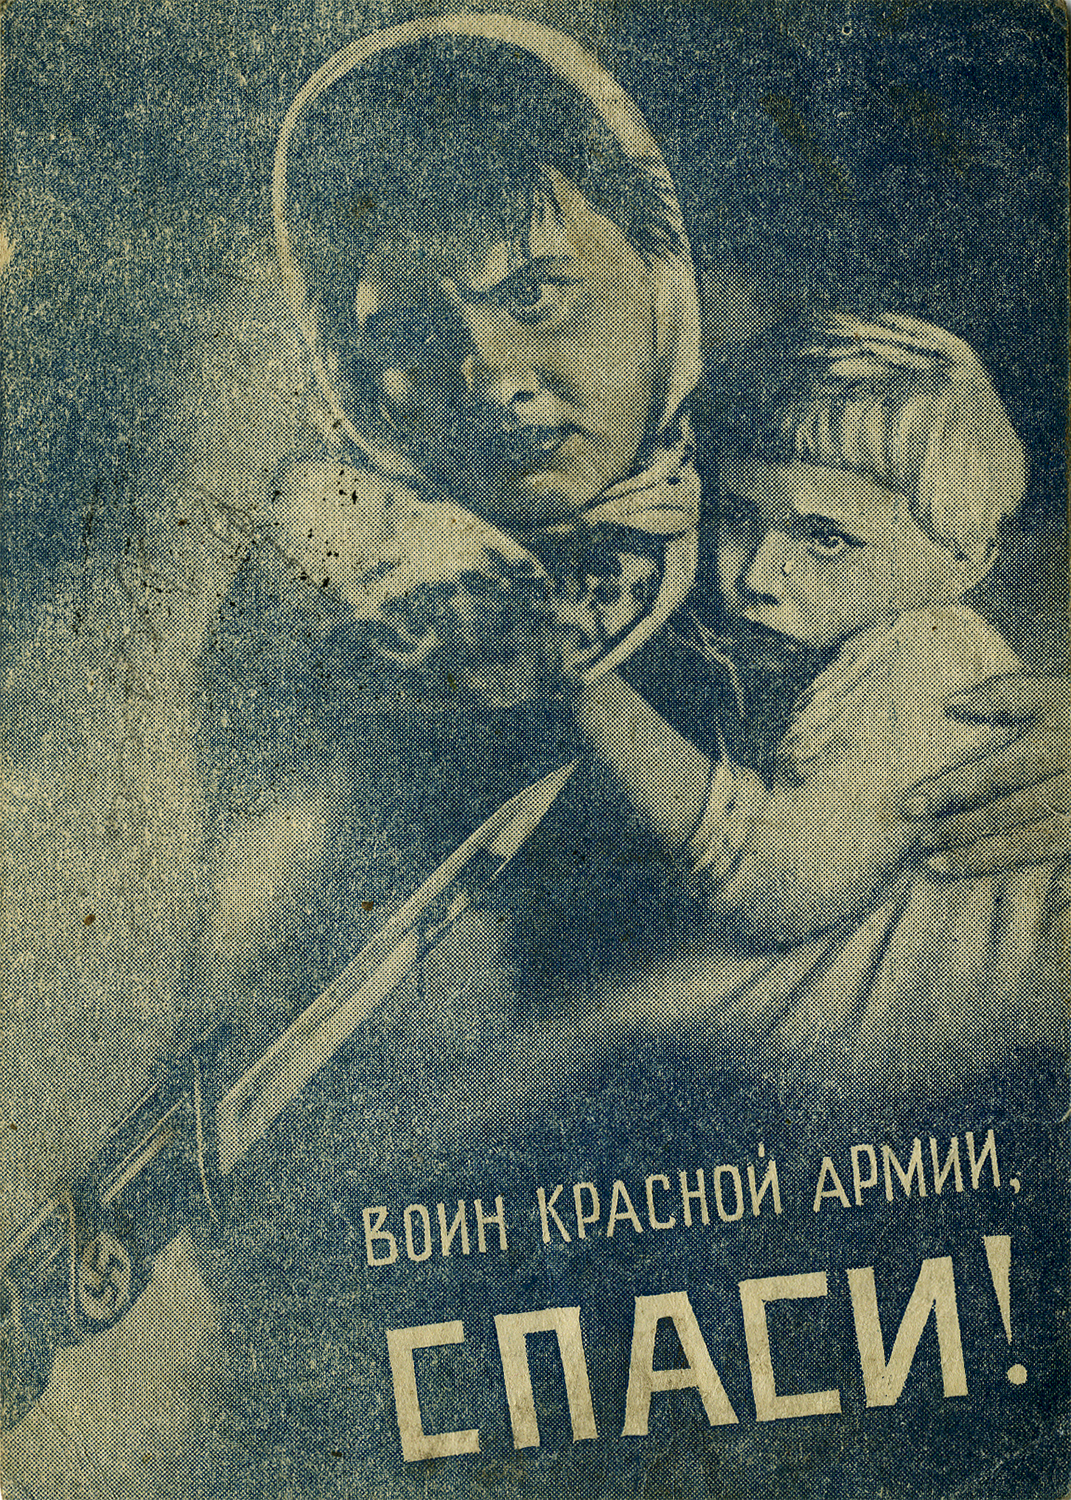 """Postcard, written on 23 February 1943, sent from front-line soldier Ilya Glickman to his sister.""""Today is the Day of the Red Army. And this day of celebration for us has again been ruined by the damned Hun. Today one of my best friends perished, doctor's assistant Sima Bukhtiyarov. Friends at the front become very close, almost like relatives, and the loss of a friend is very hard for me to take. I am alive and well, and I feel fine, but my mood isn't great. I haven't received any letters from you in a long time. Rainka, don't be annoyed that I'm sending this kind of postcard. Write. I'm waiting. Your brother, Ilya """""""